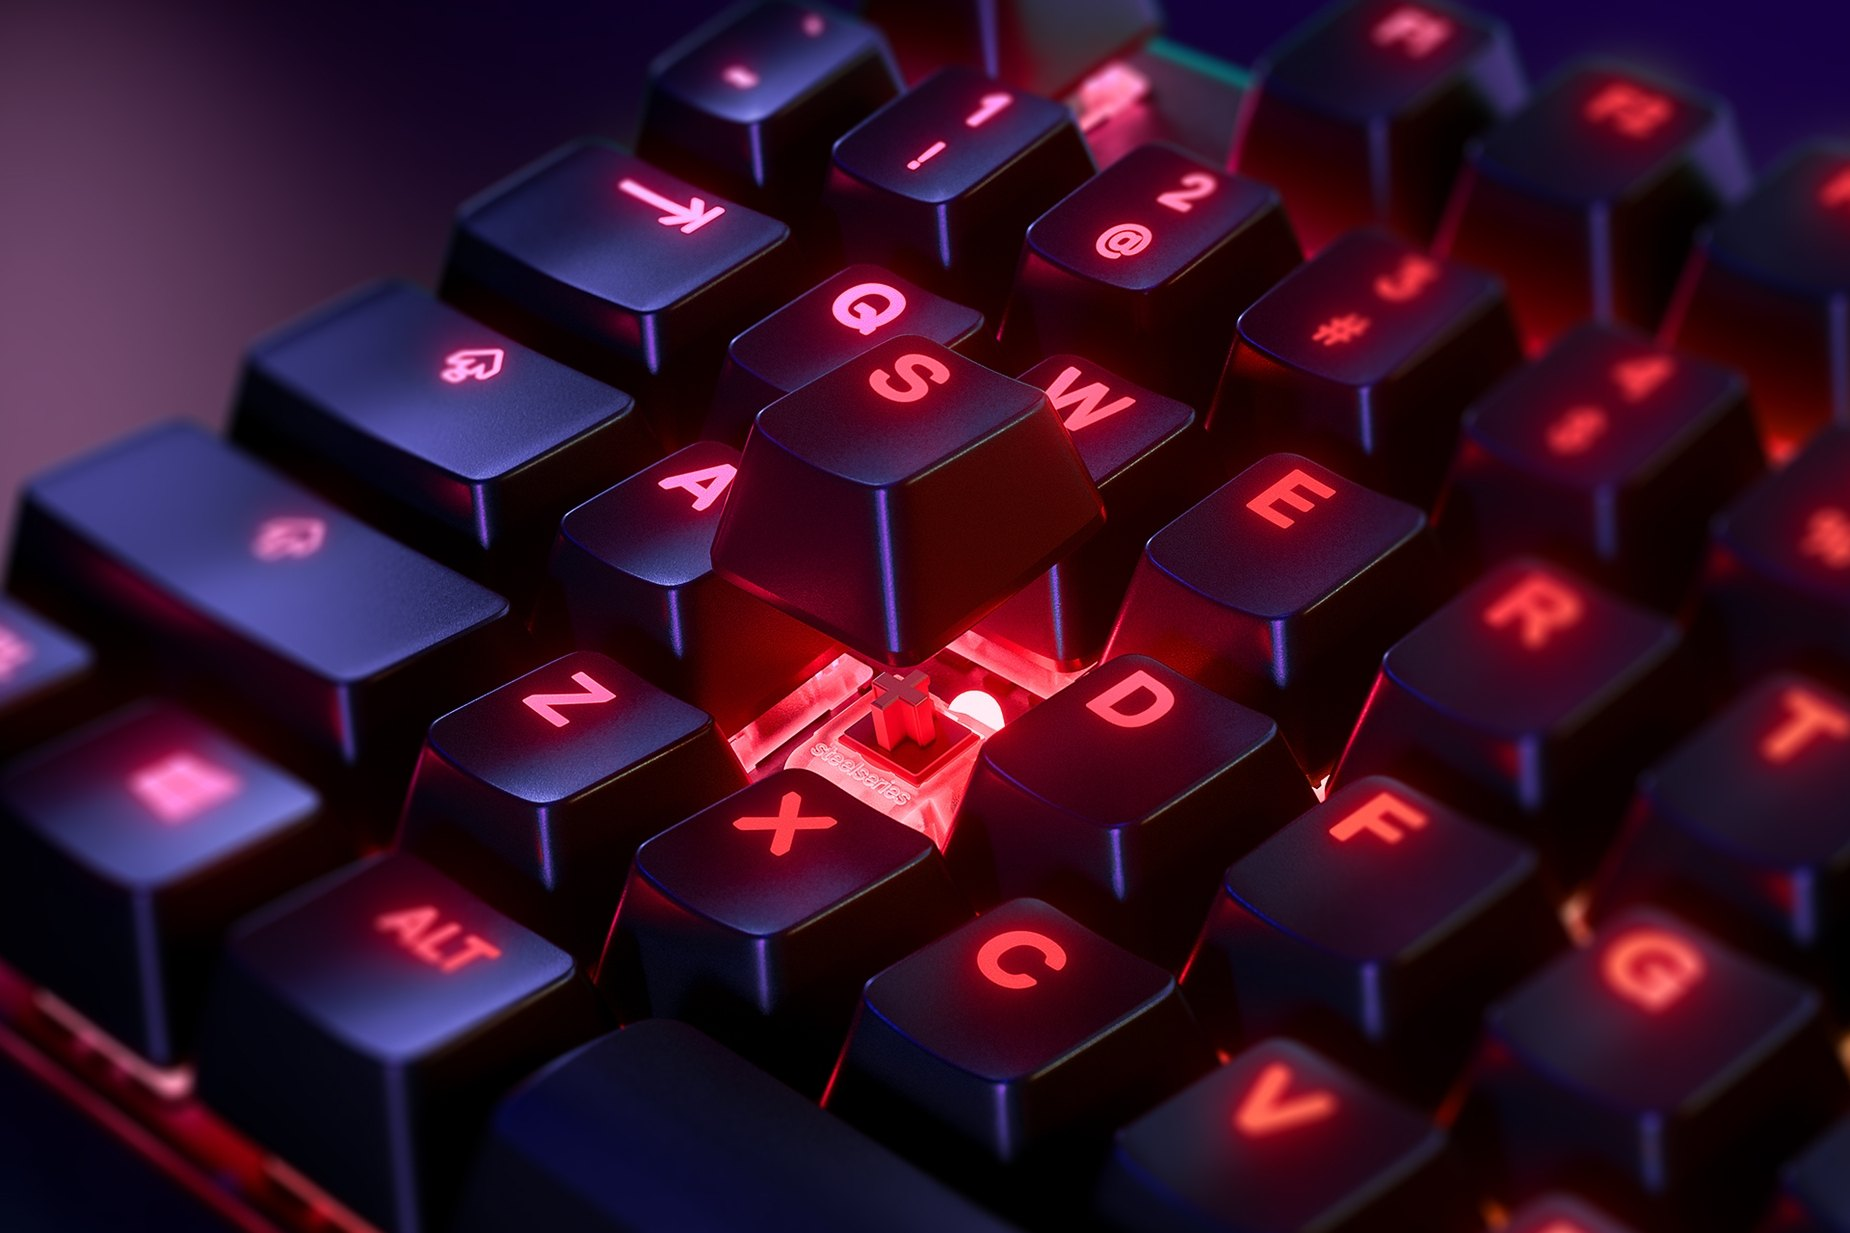 Zoomed in view of a single key on the German - Apex 7 TKL (Kırmızı Anahtar) gaming keyboard, the key is raised up to show the SteelSeries QX2 Mechanical RGB Switch underneath